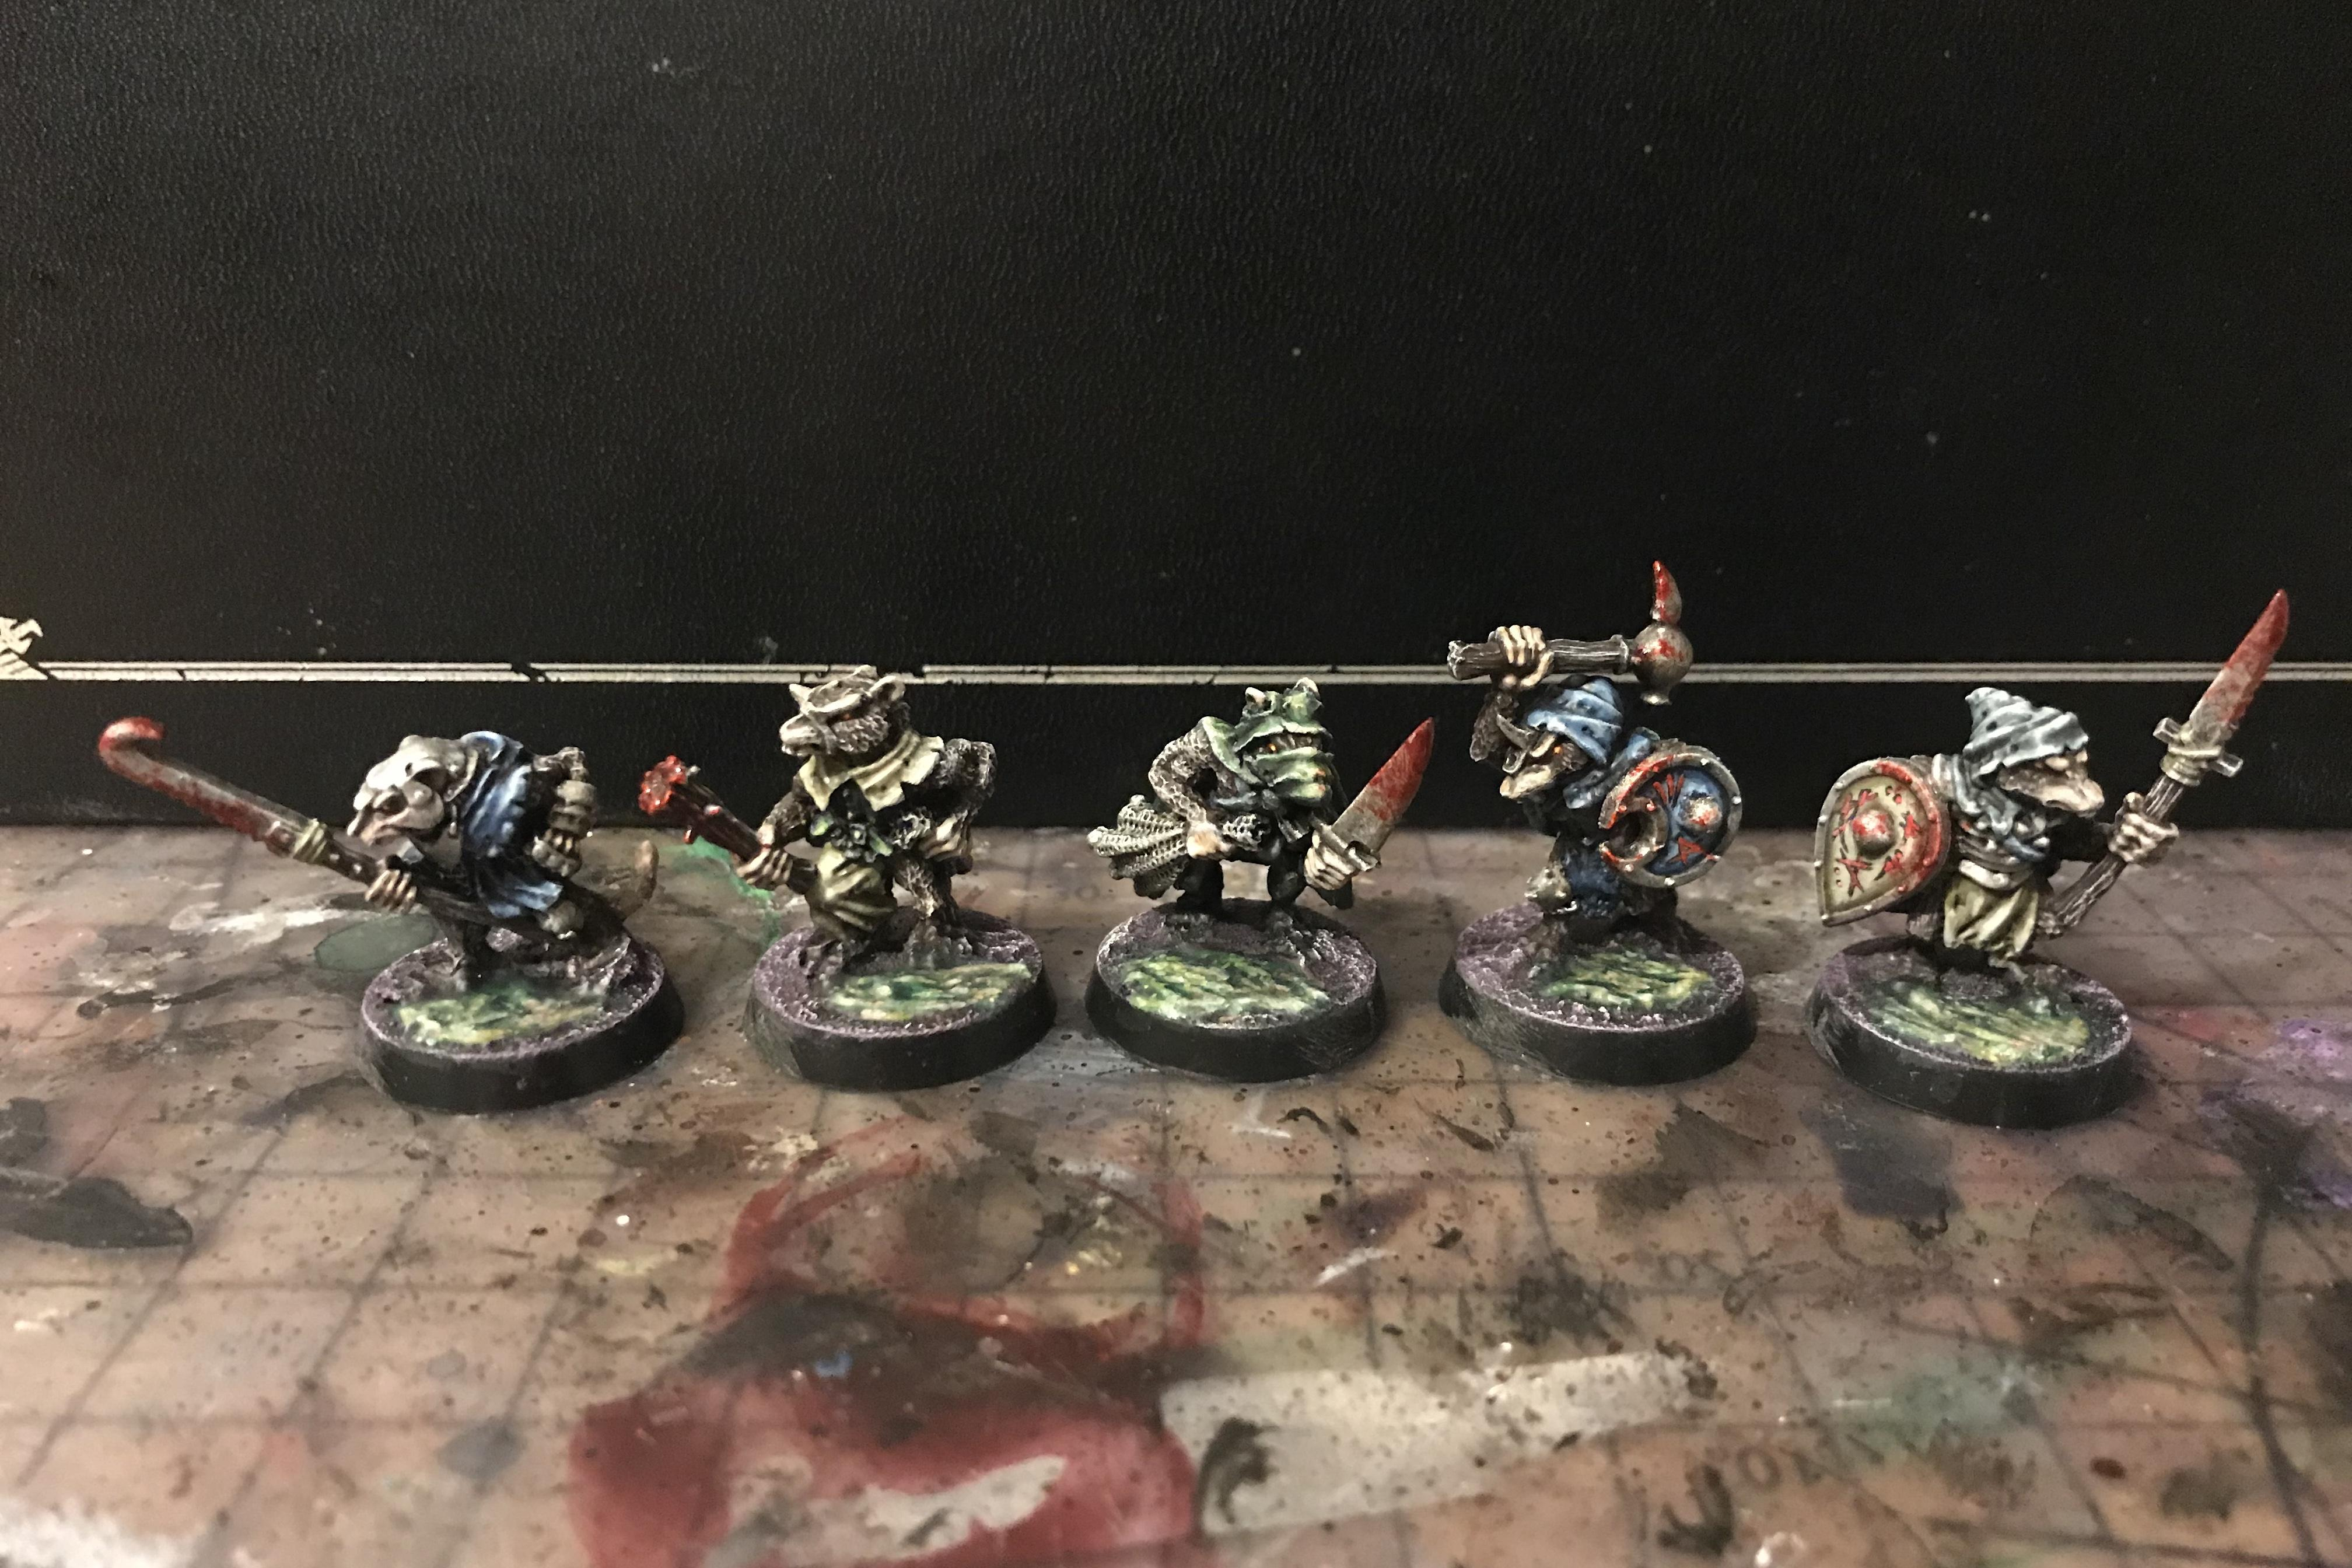 25mm, Aelf, Aelfs, Aelves, Age, Age Of Sigmar, And, Aquatic, Ark, Arrow, Battle, Battles, Bb, Big, Black, Blitzer, Blitzers, Blood, Blood Bowl, Blue, Bow, Bowl, C47, Chaos Ratmen, Citadel, City, Cold, Colors, Cowboys, Creature, Creatures, Dark, Dark Angels, Dark Elves, Deathzone, Denizens, Dungeon, Elfs, Elves, End, Evil, Football, Gitz, Goblins, Guard, Guy, High, Infantry, Khaine, Khaine's, Lineman, Looney, Marauders, Mariner, Mariners, Medieval, Metal, Miniatures, Minis, Models, Mordheim, Mortal, Naggaroth, Nightmares, Of, Old, Olde, Oldhammer, Orcs, Painted, Play, Raiders, Raiding, Rat, Ratmen, Rats, Ratspike, Realms, Role, Runner, Sailing, Sailor, Sails, Sea, Sea Elves, Sigmar, Skaven, Skirmish, Soldiers, Space Marines, Spear, Sword, The, Times, Troll, Underworld, Underworld Denizens, Vibrant, Warhammer Fantasy, Whf, Whfbrp, Witch, Witches, Woodland, World, Worlde, Wranglers